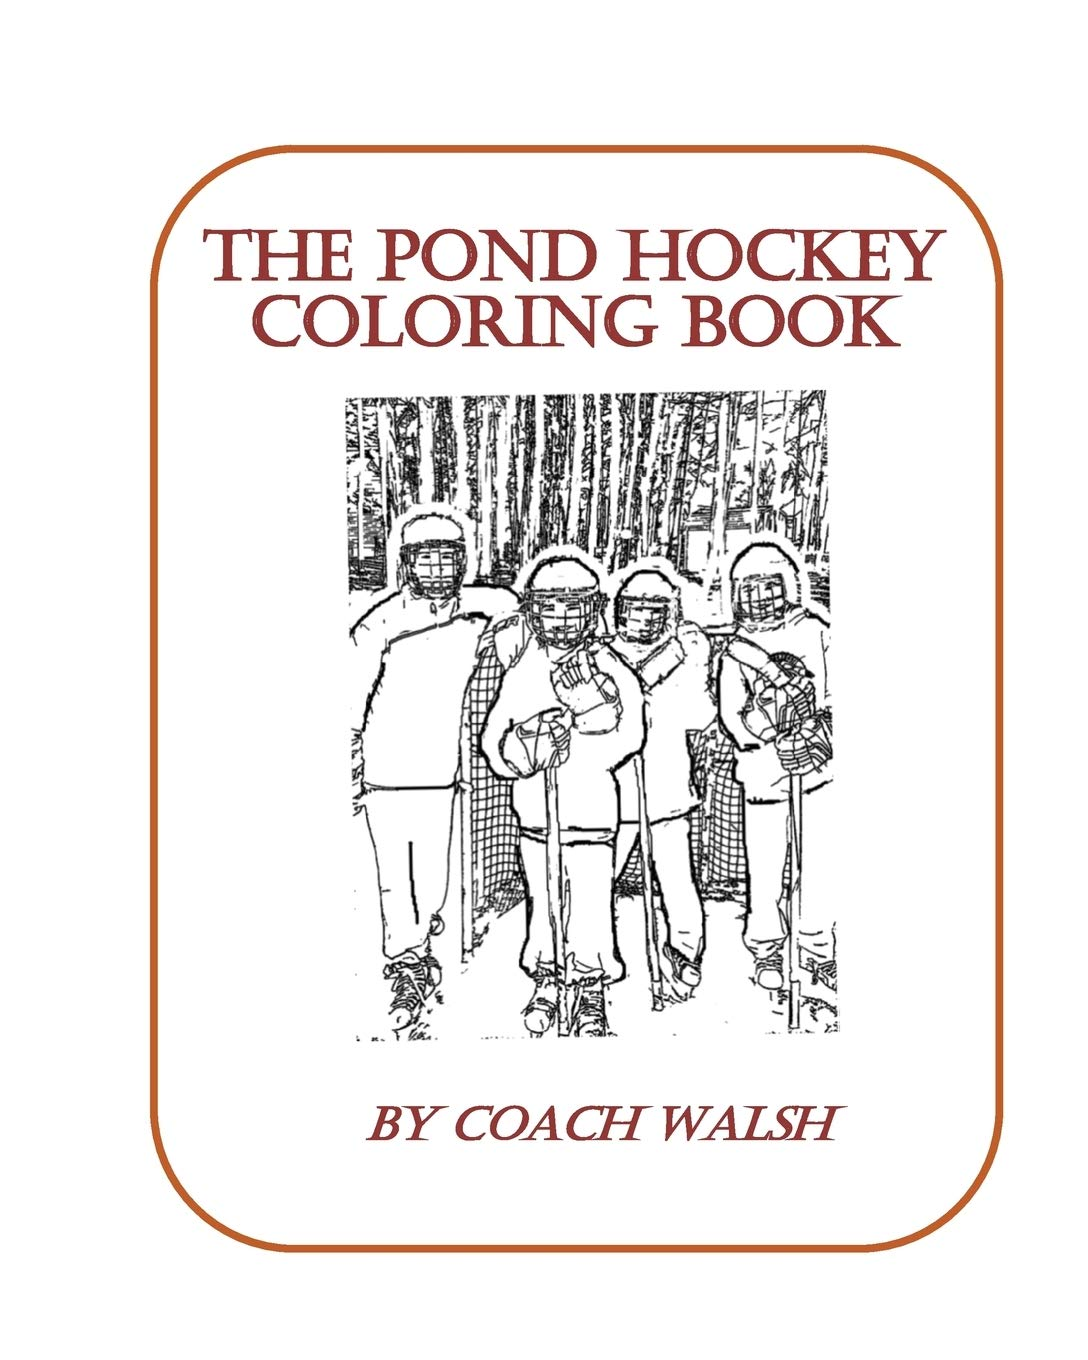 Pond Hockey Coloring Book: Over 20 pages of Pond Hockey ...